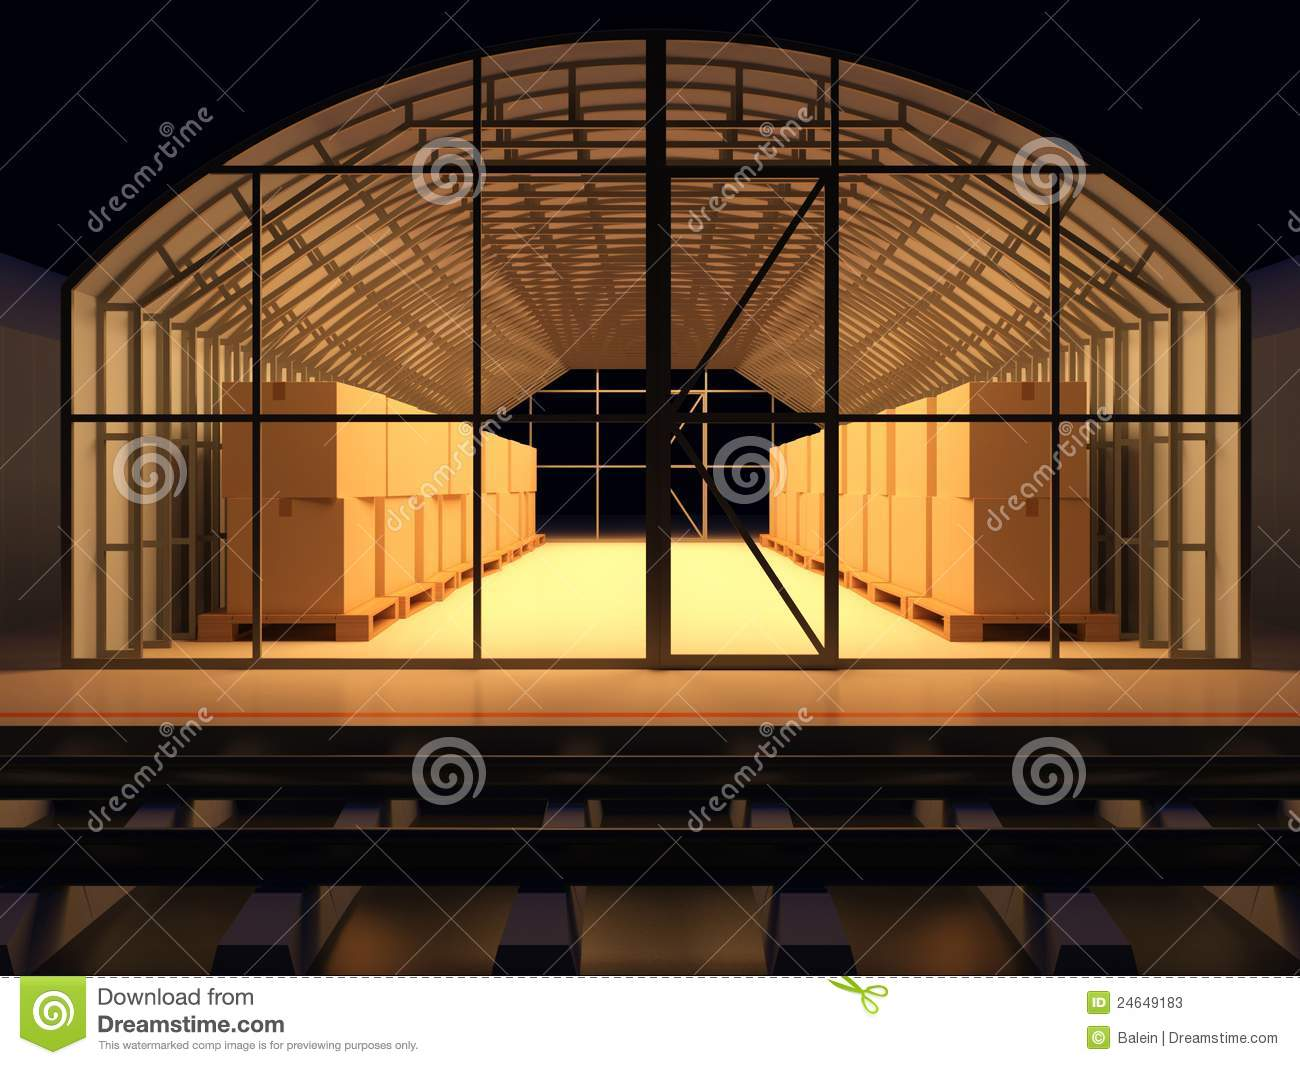 Storage Facilities  Warehouse Of Commodity  3d Render Illustration